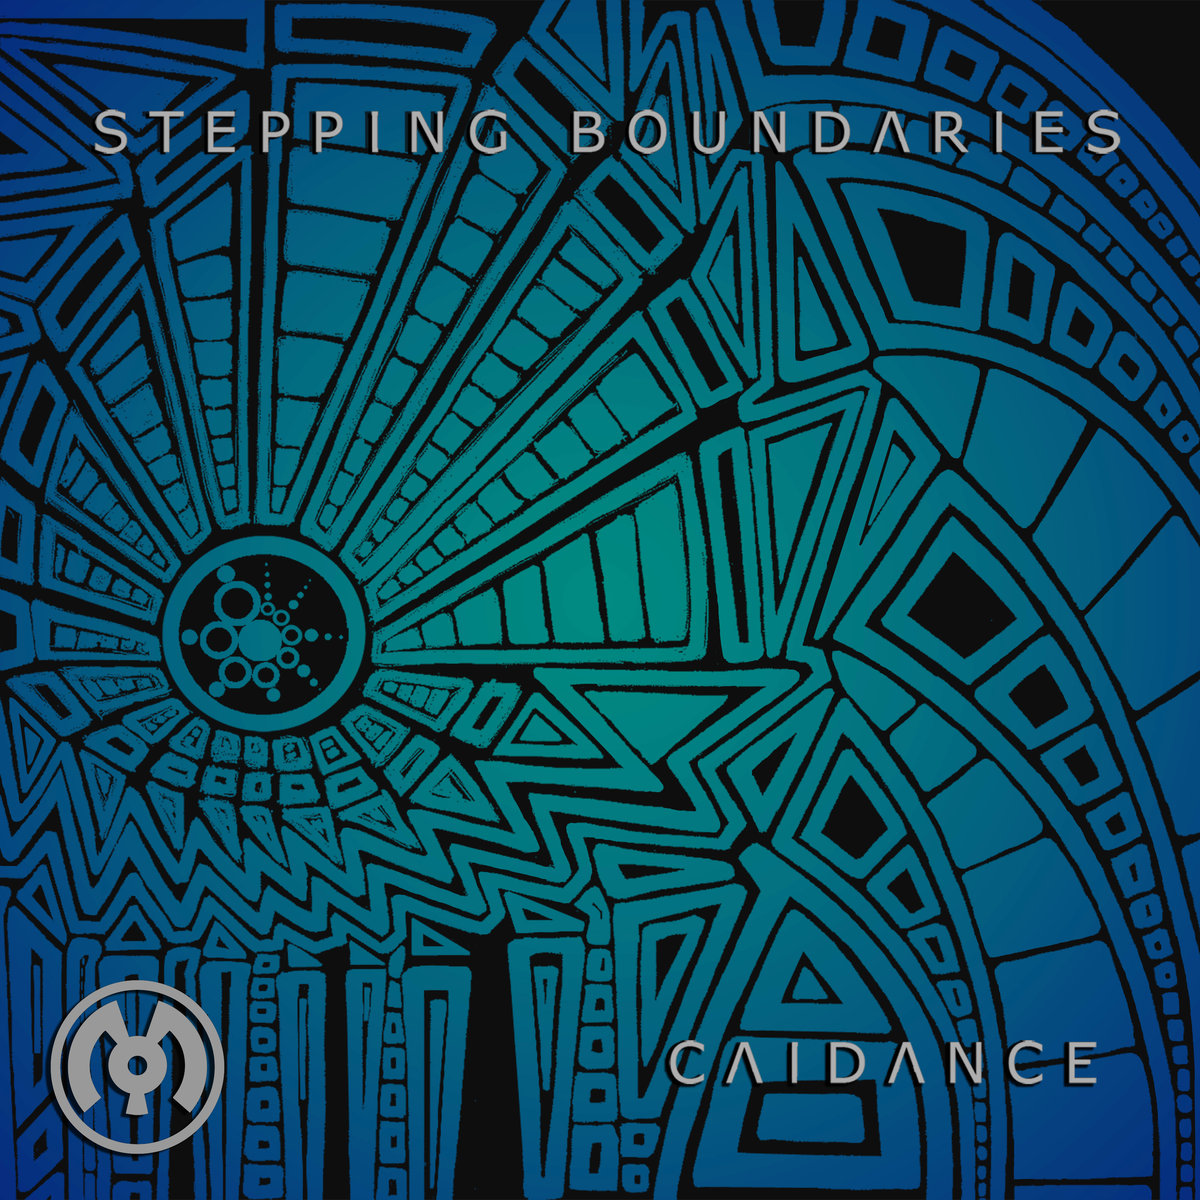 Caidance - Corbusier @ 'Stepping Boundaries' album (electronic, dubstep)